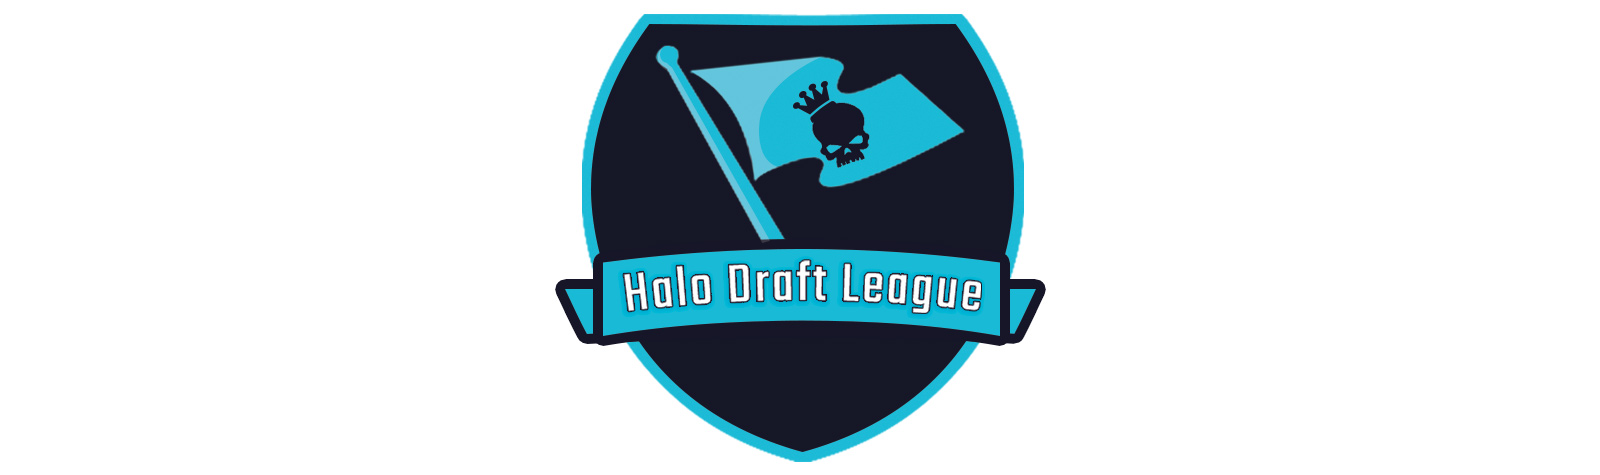 Halo Draft League – Week 3 Standings